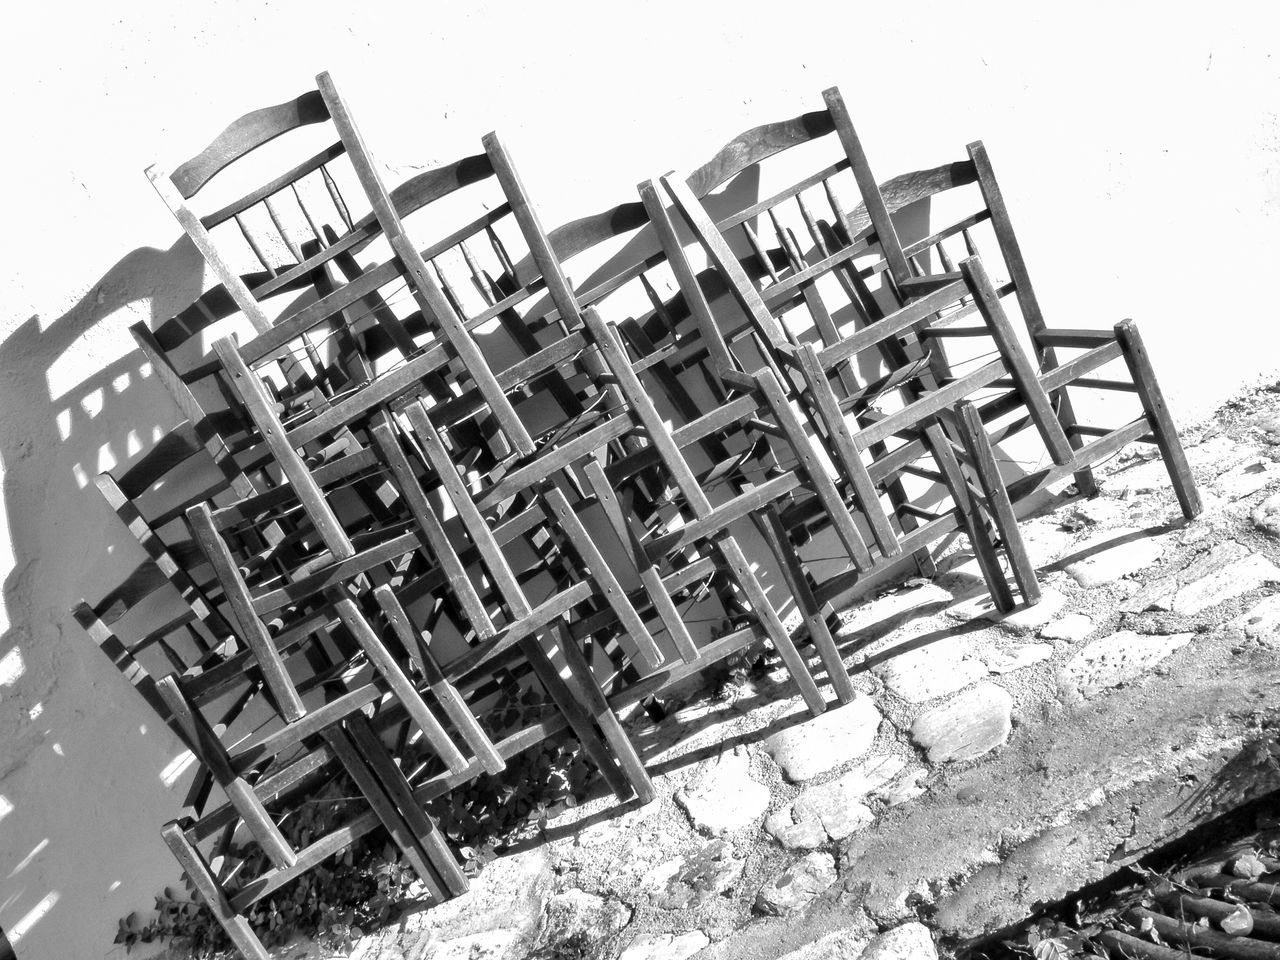 Stack Of Abandoned Chairs On Sidewalk Against Wall